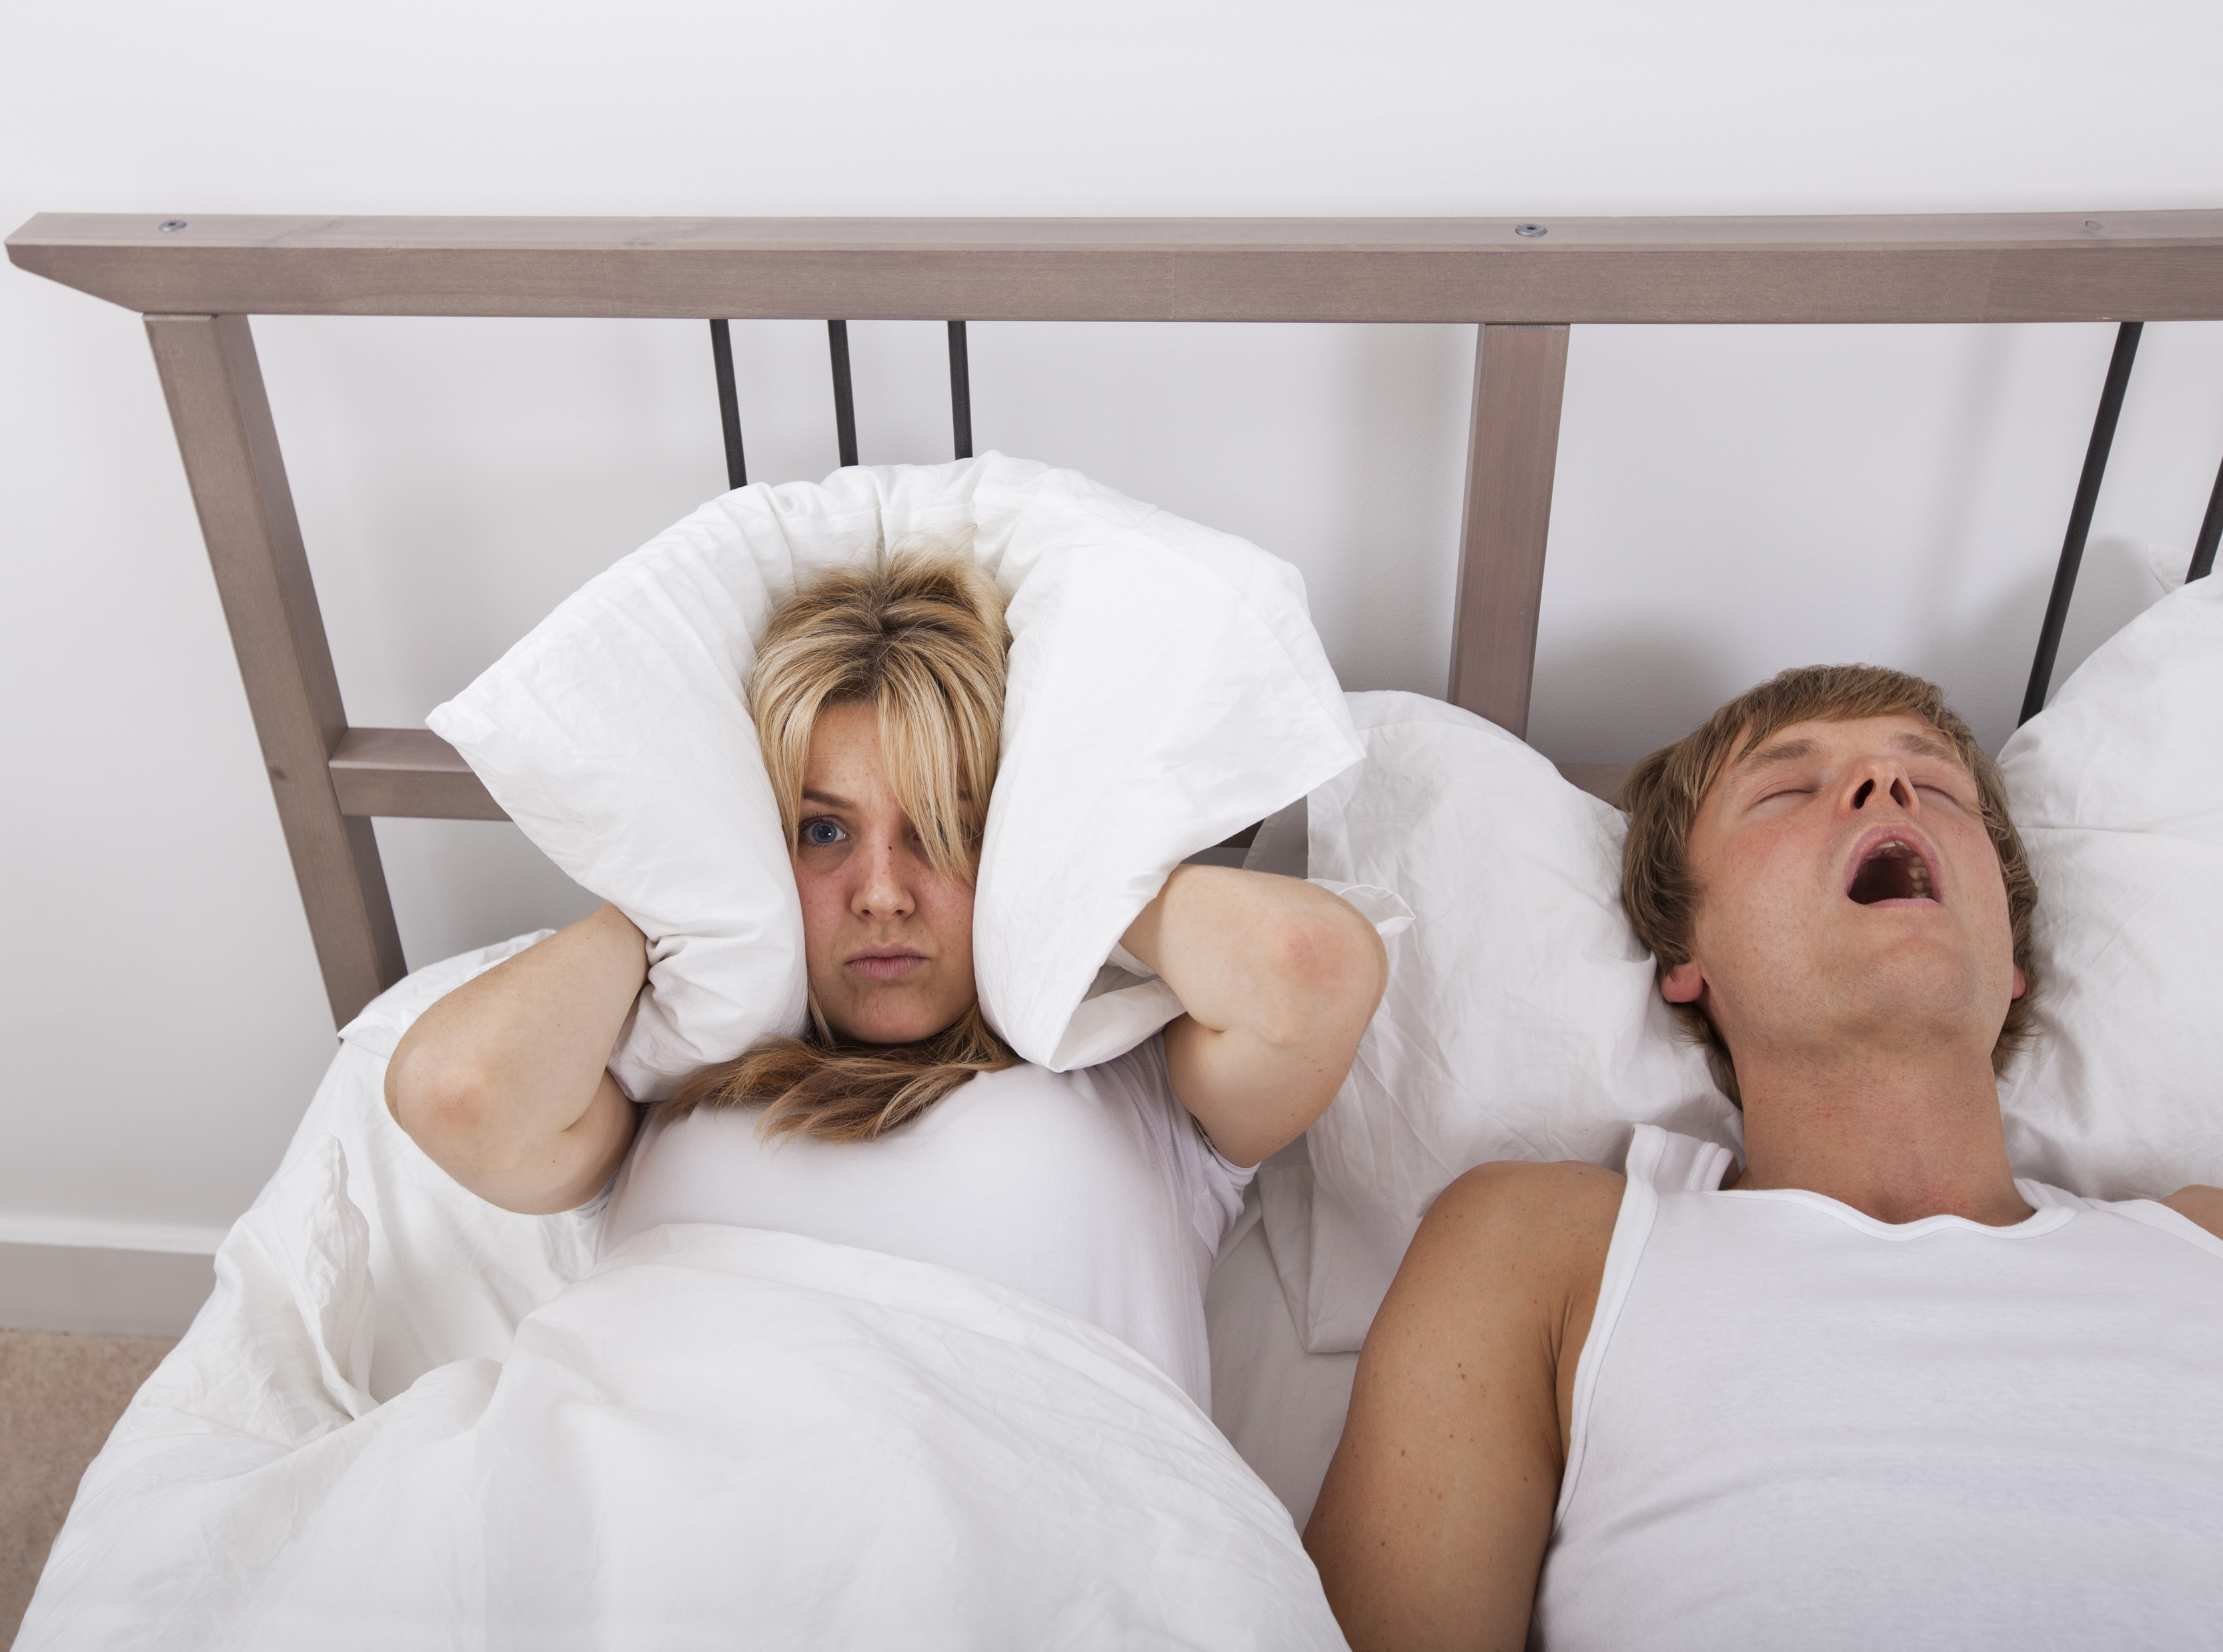 Man Snoring with Upset Wife 2